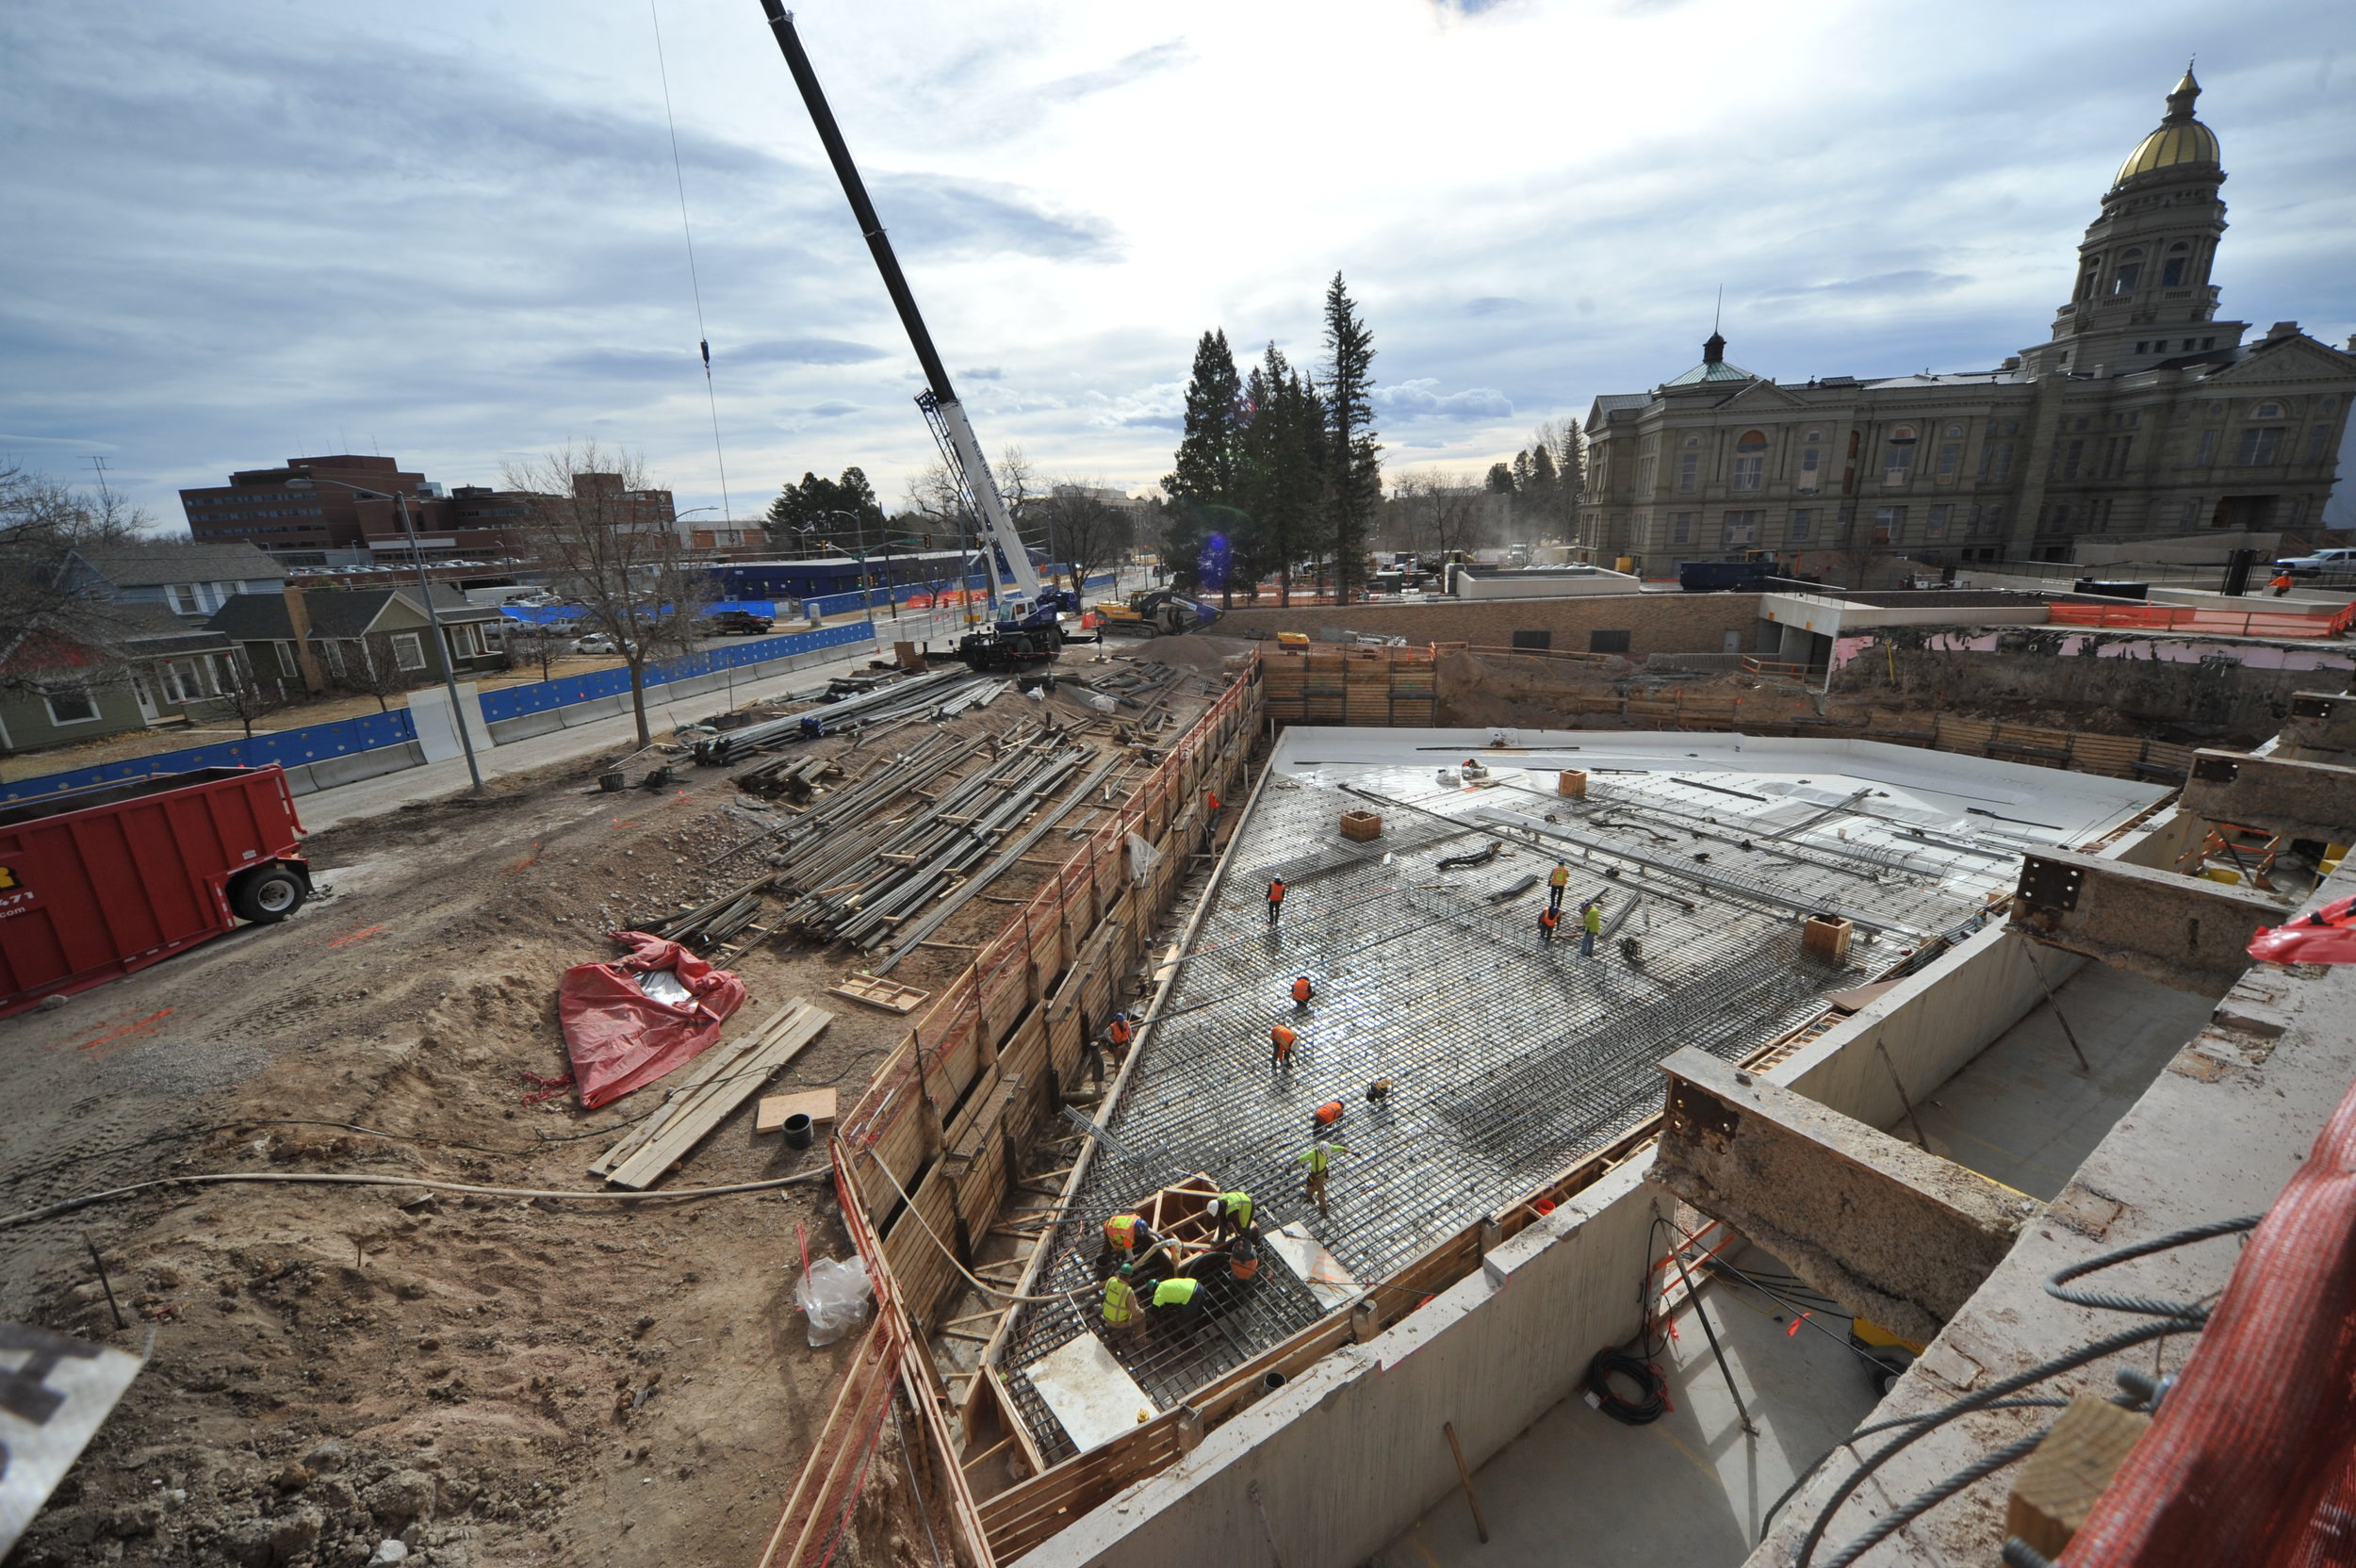 Last week, workers laid rebar for the mat slab foundation that will support the new central utility plant.